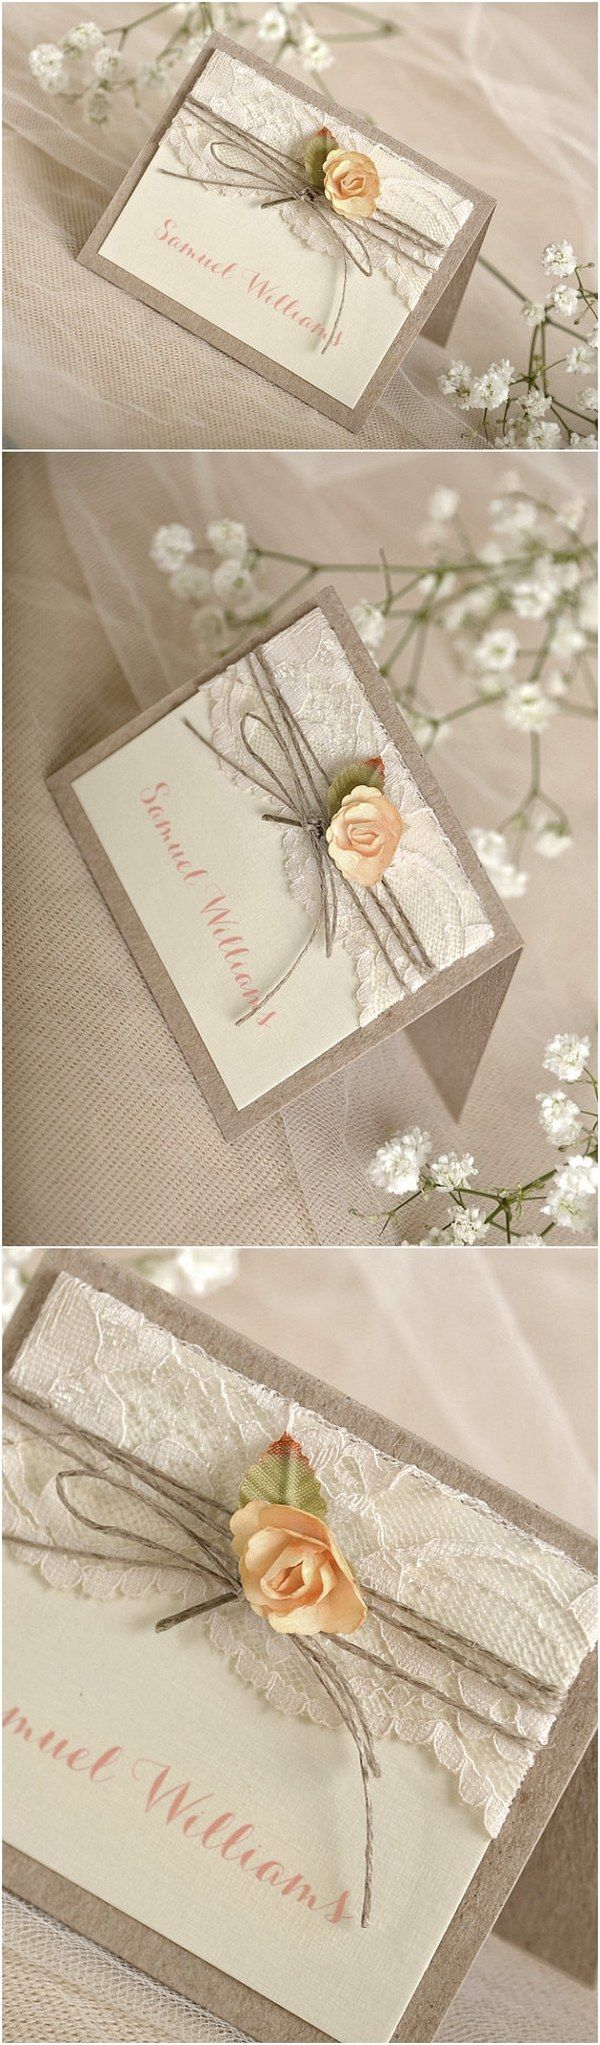 Rustic lace wedding place cards @4LOVEPolkaDots                                                                                                                                                                                 More